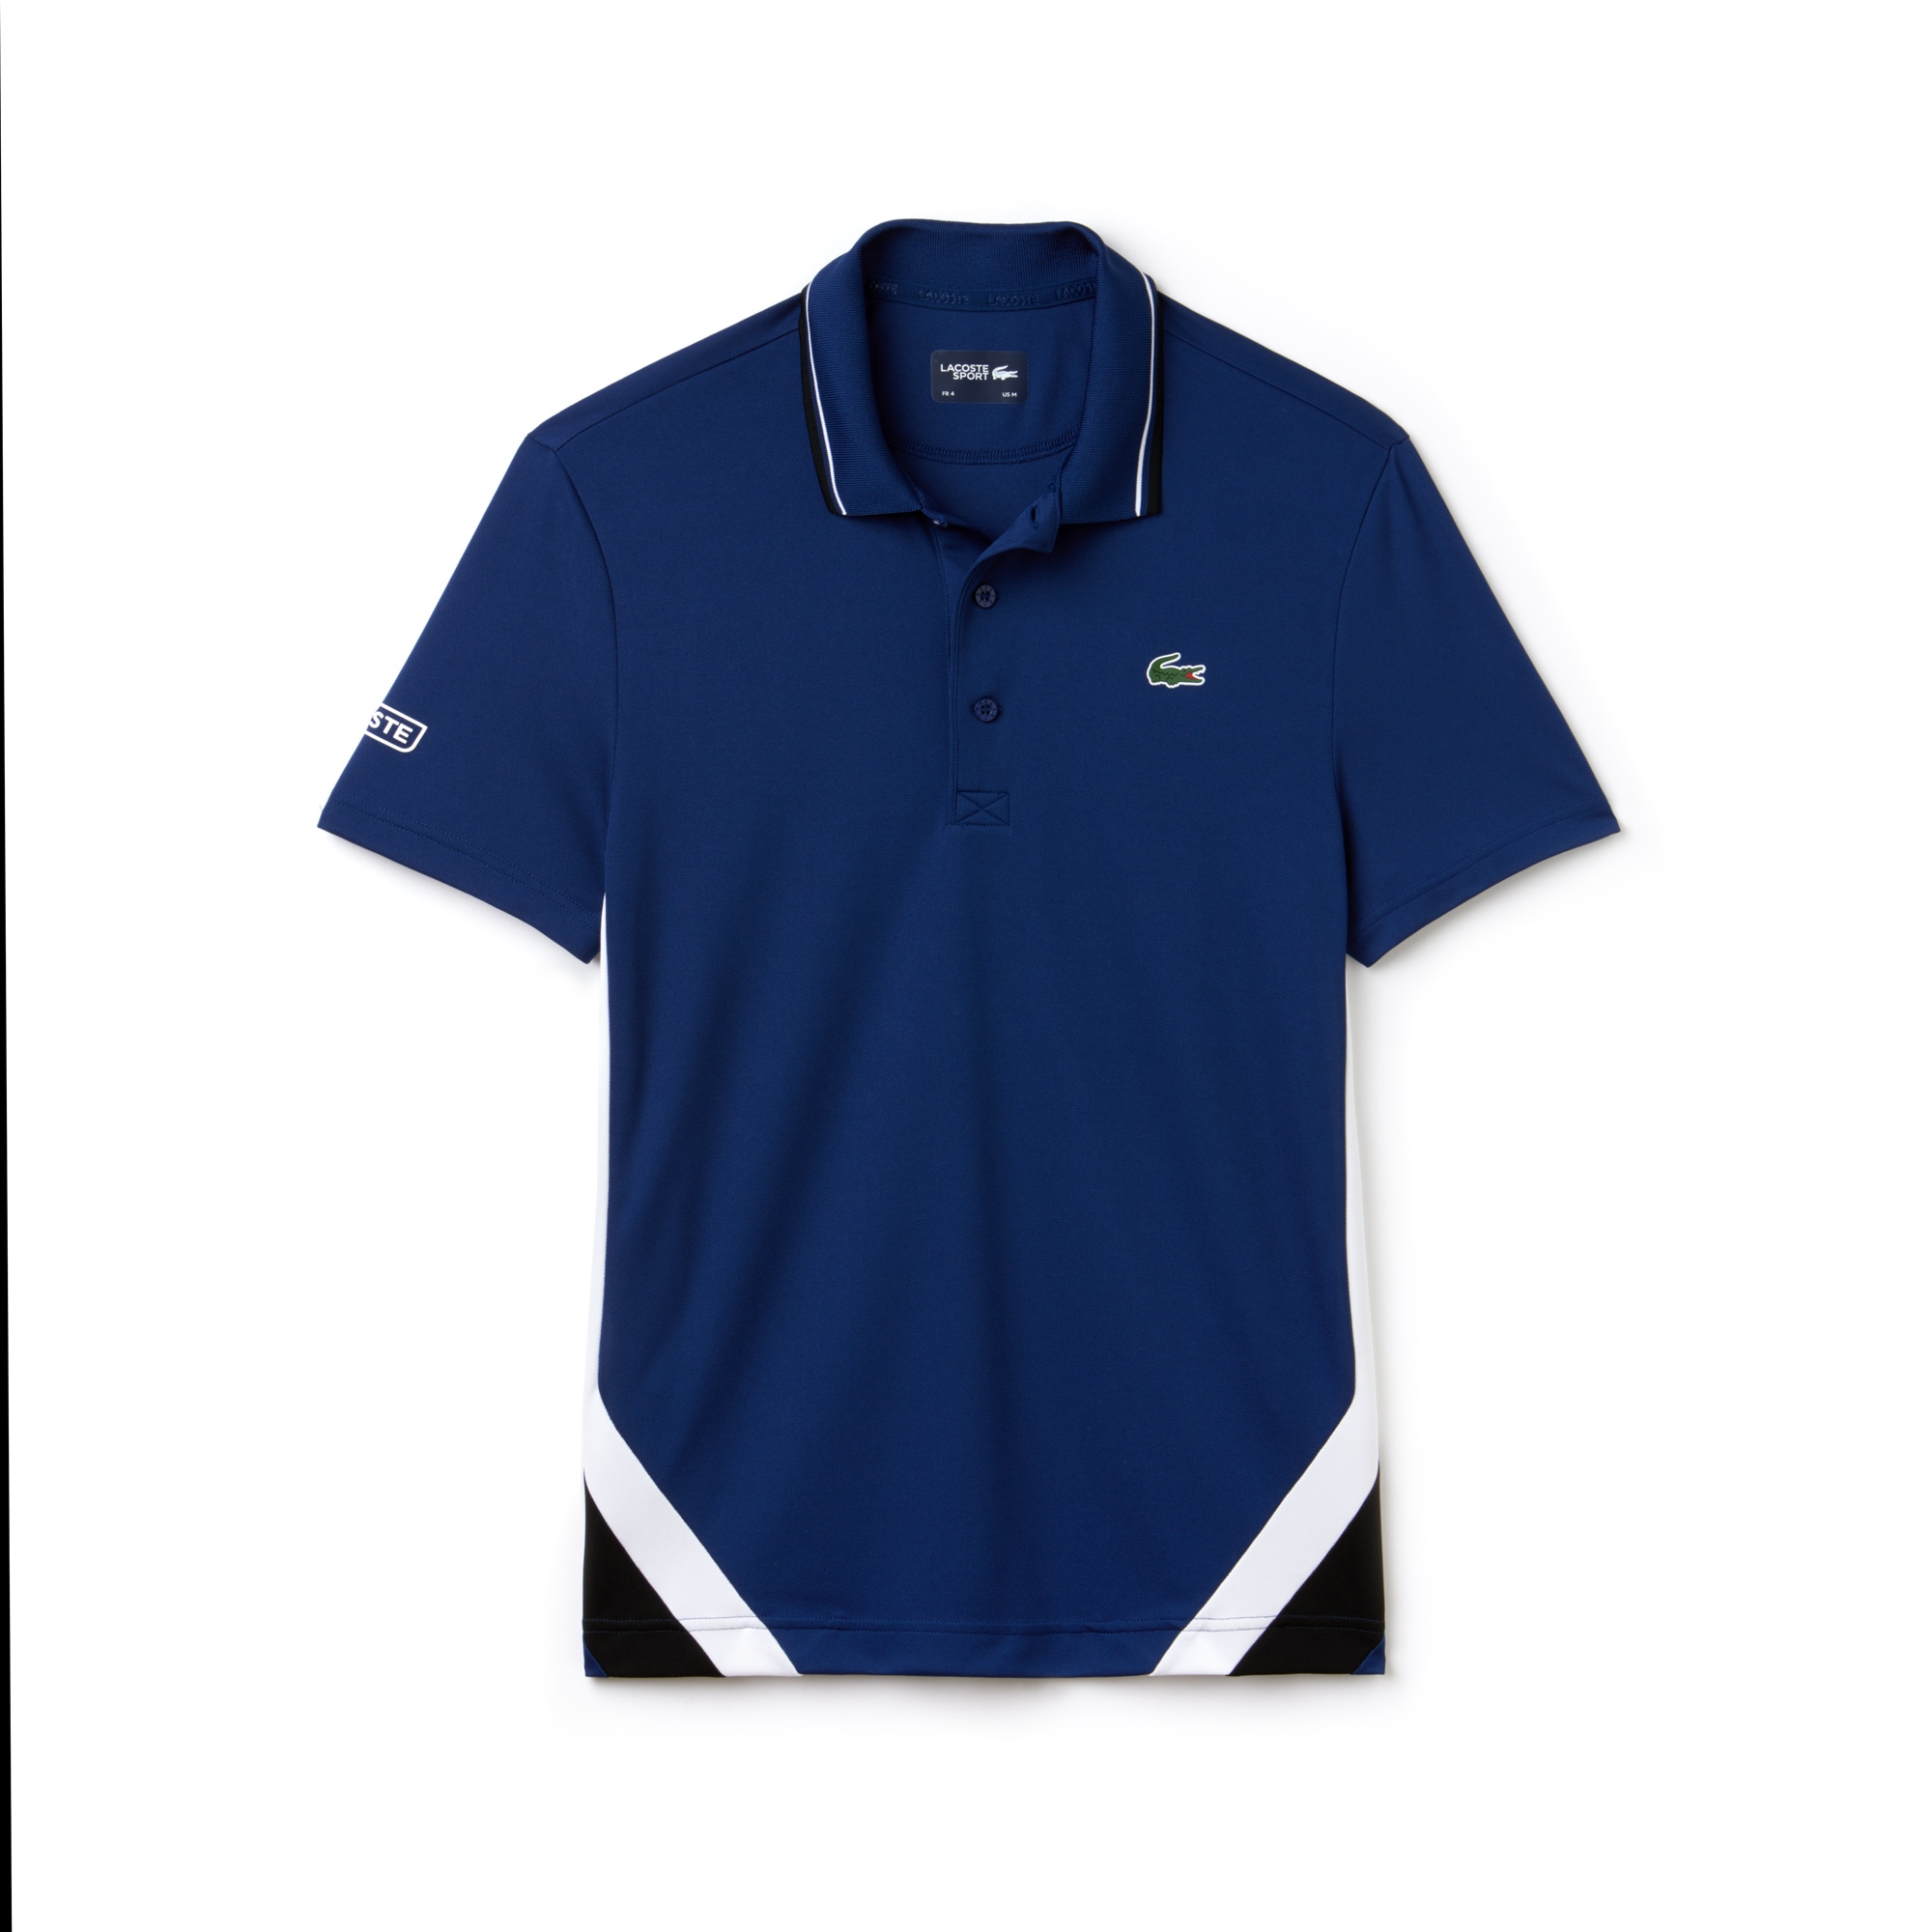 Men's SPORT Bands Technical Piqué Tennis Polo